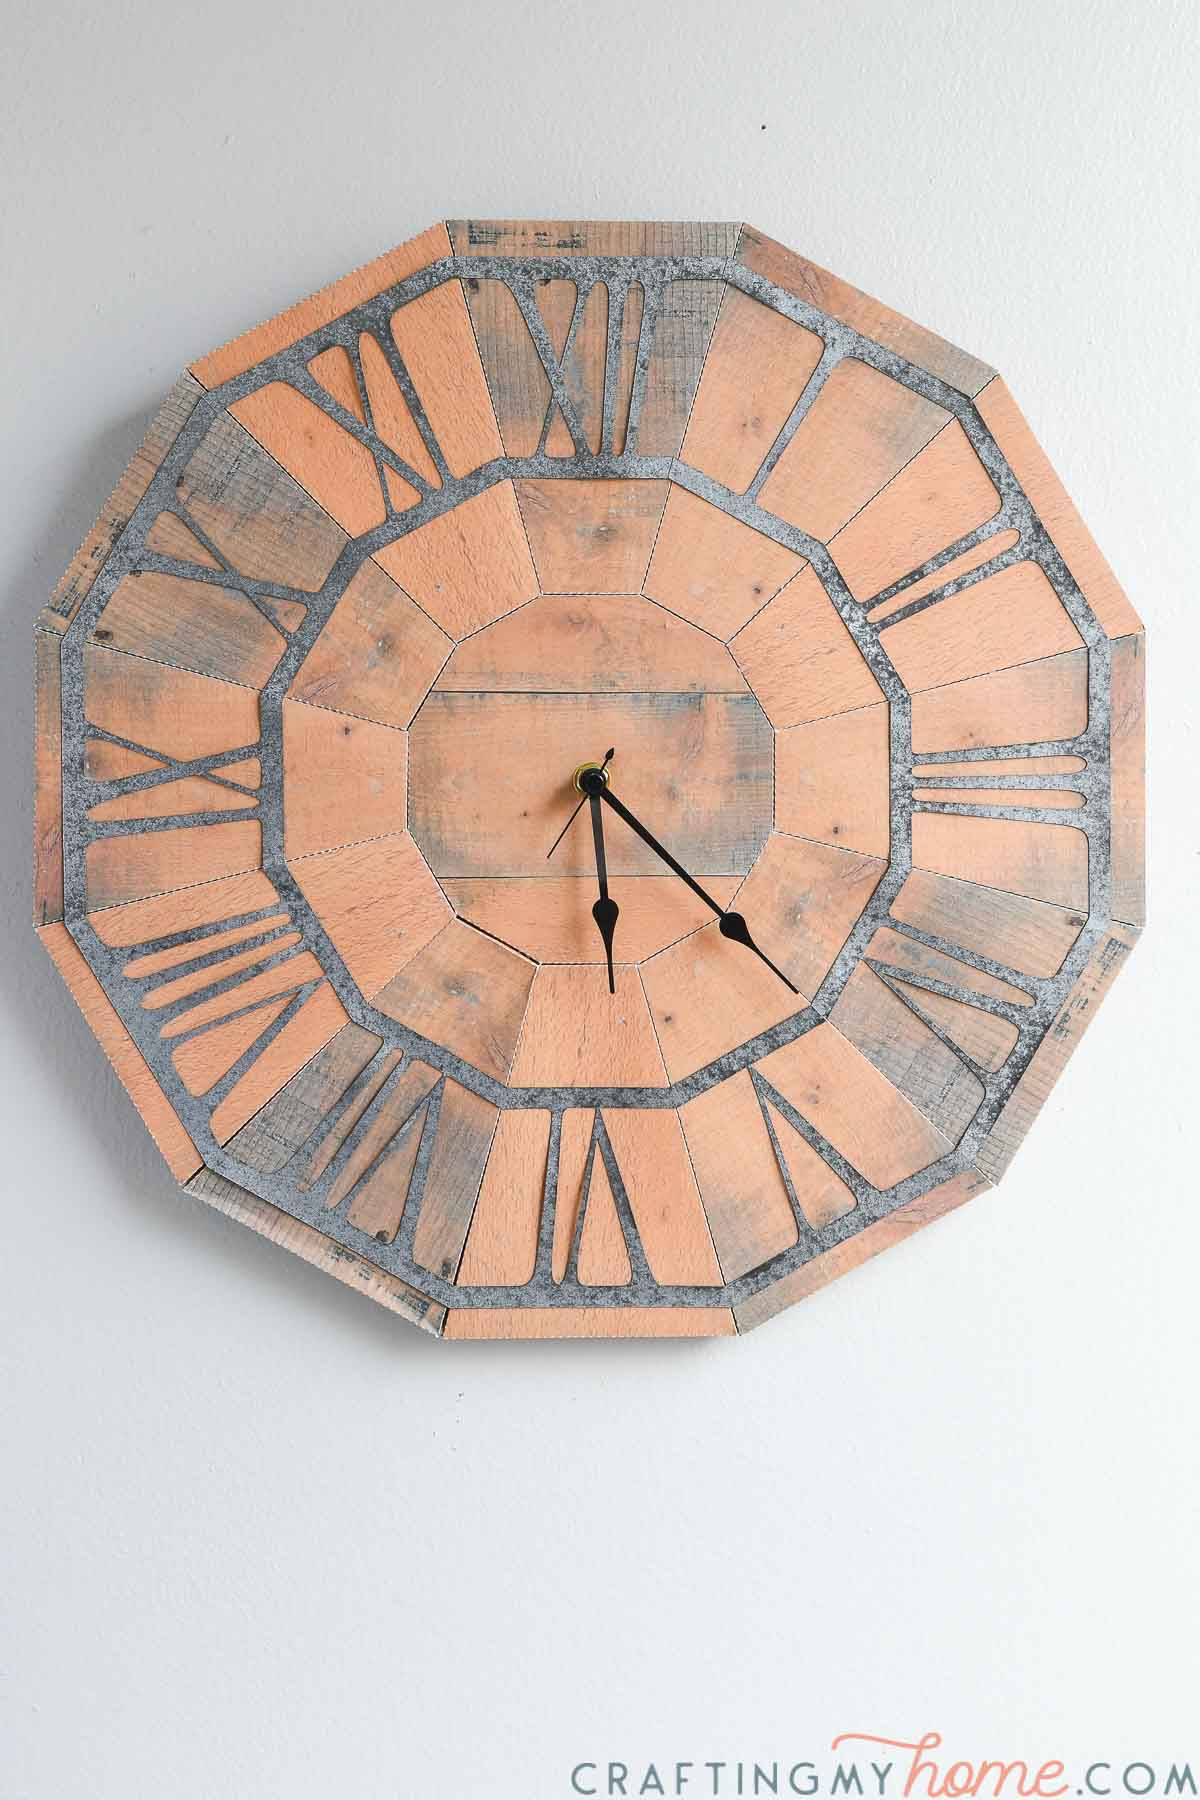 The completed pallet wood wall clock made from paper on the wall.